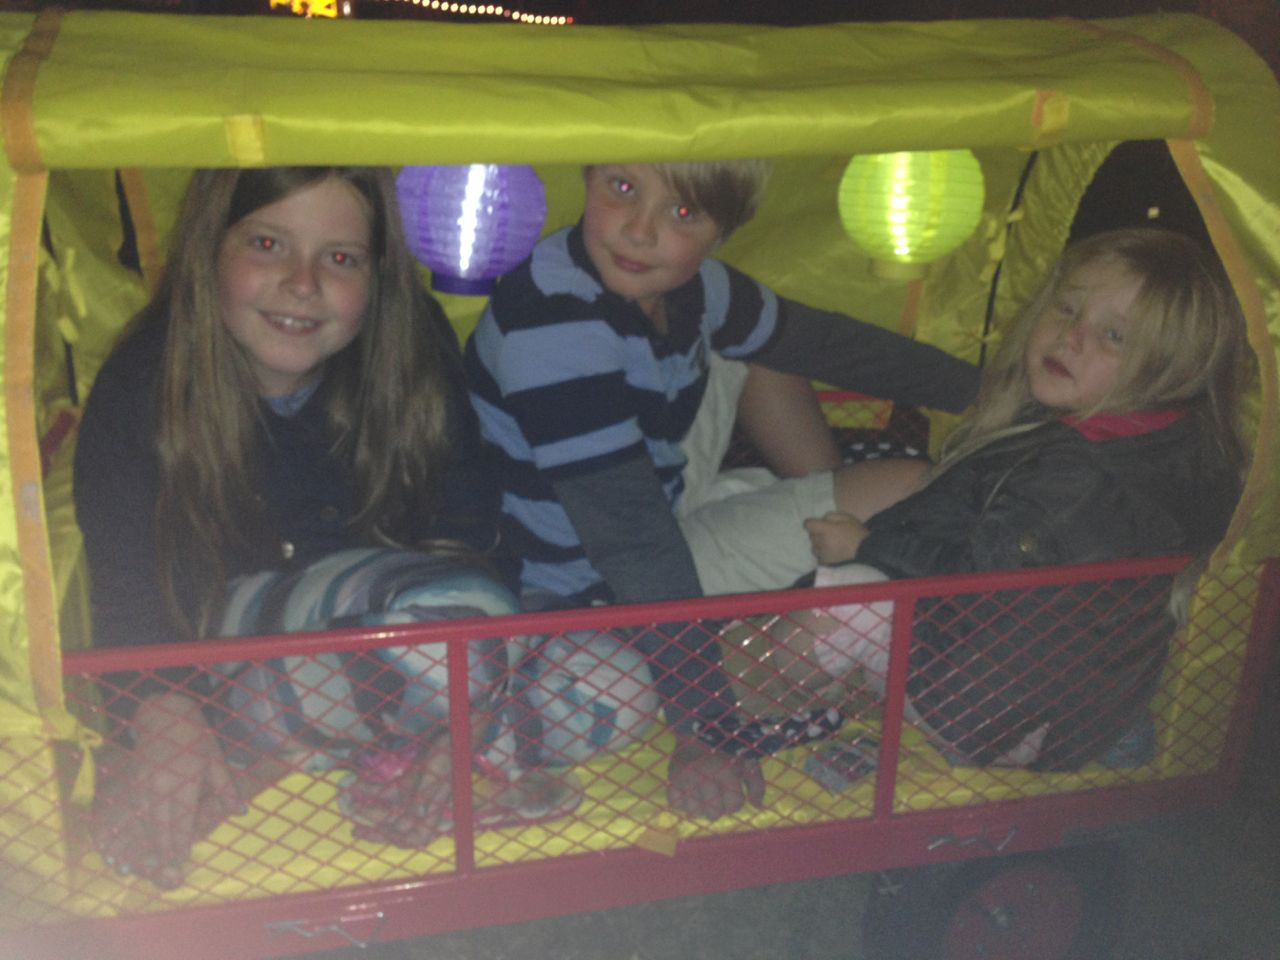 Great fun in the carriage at Carfest